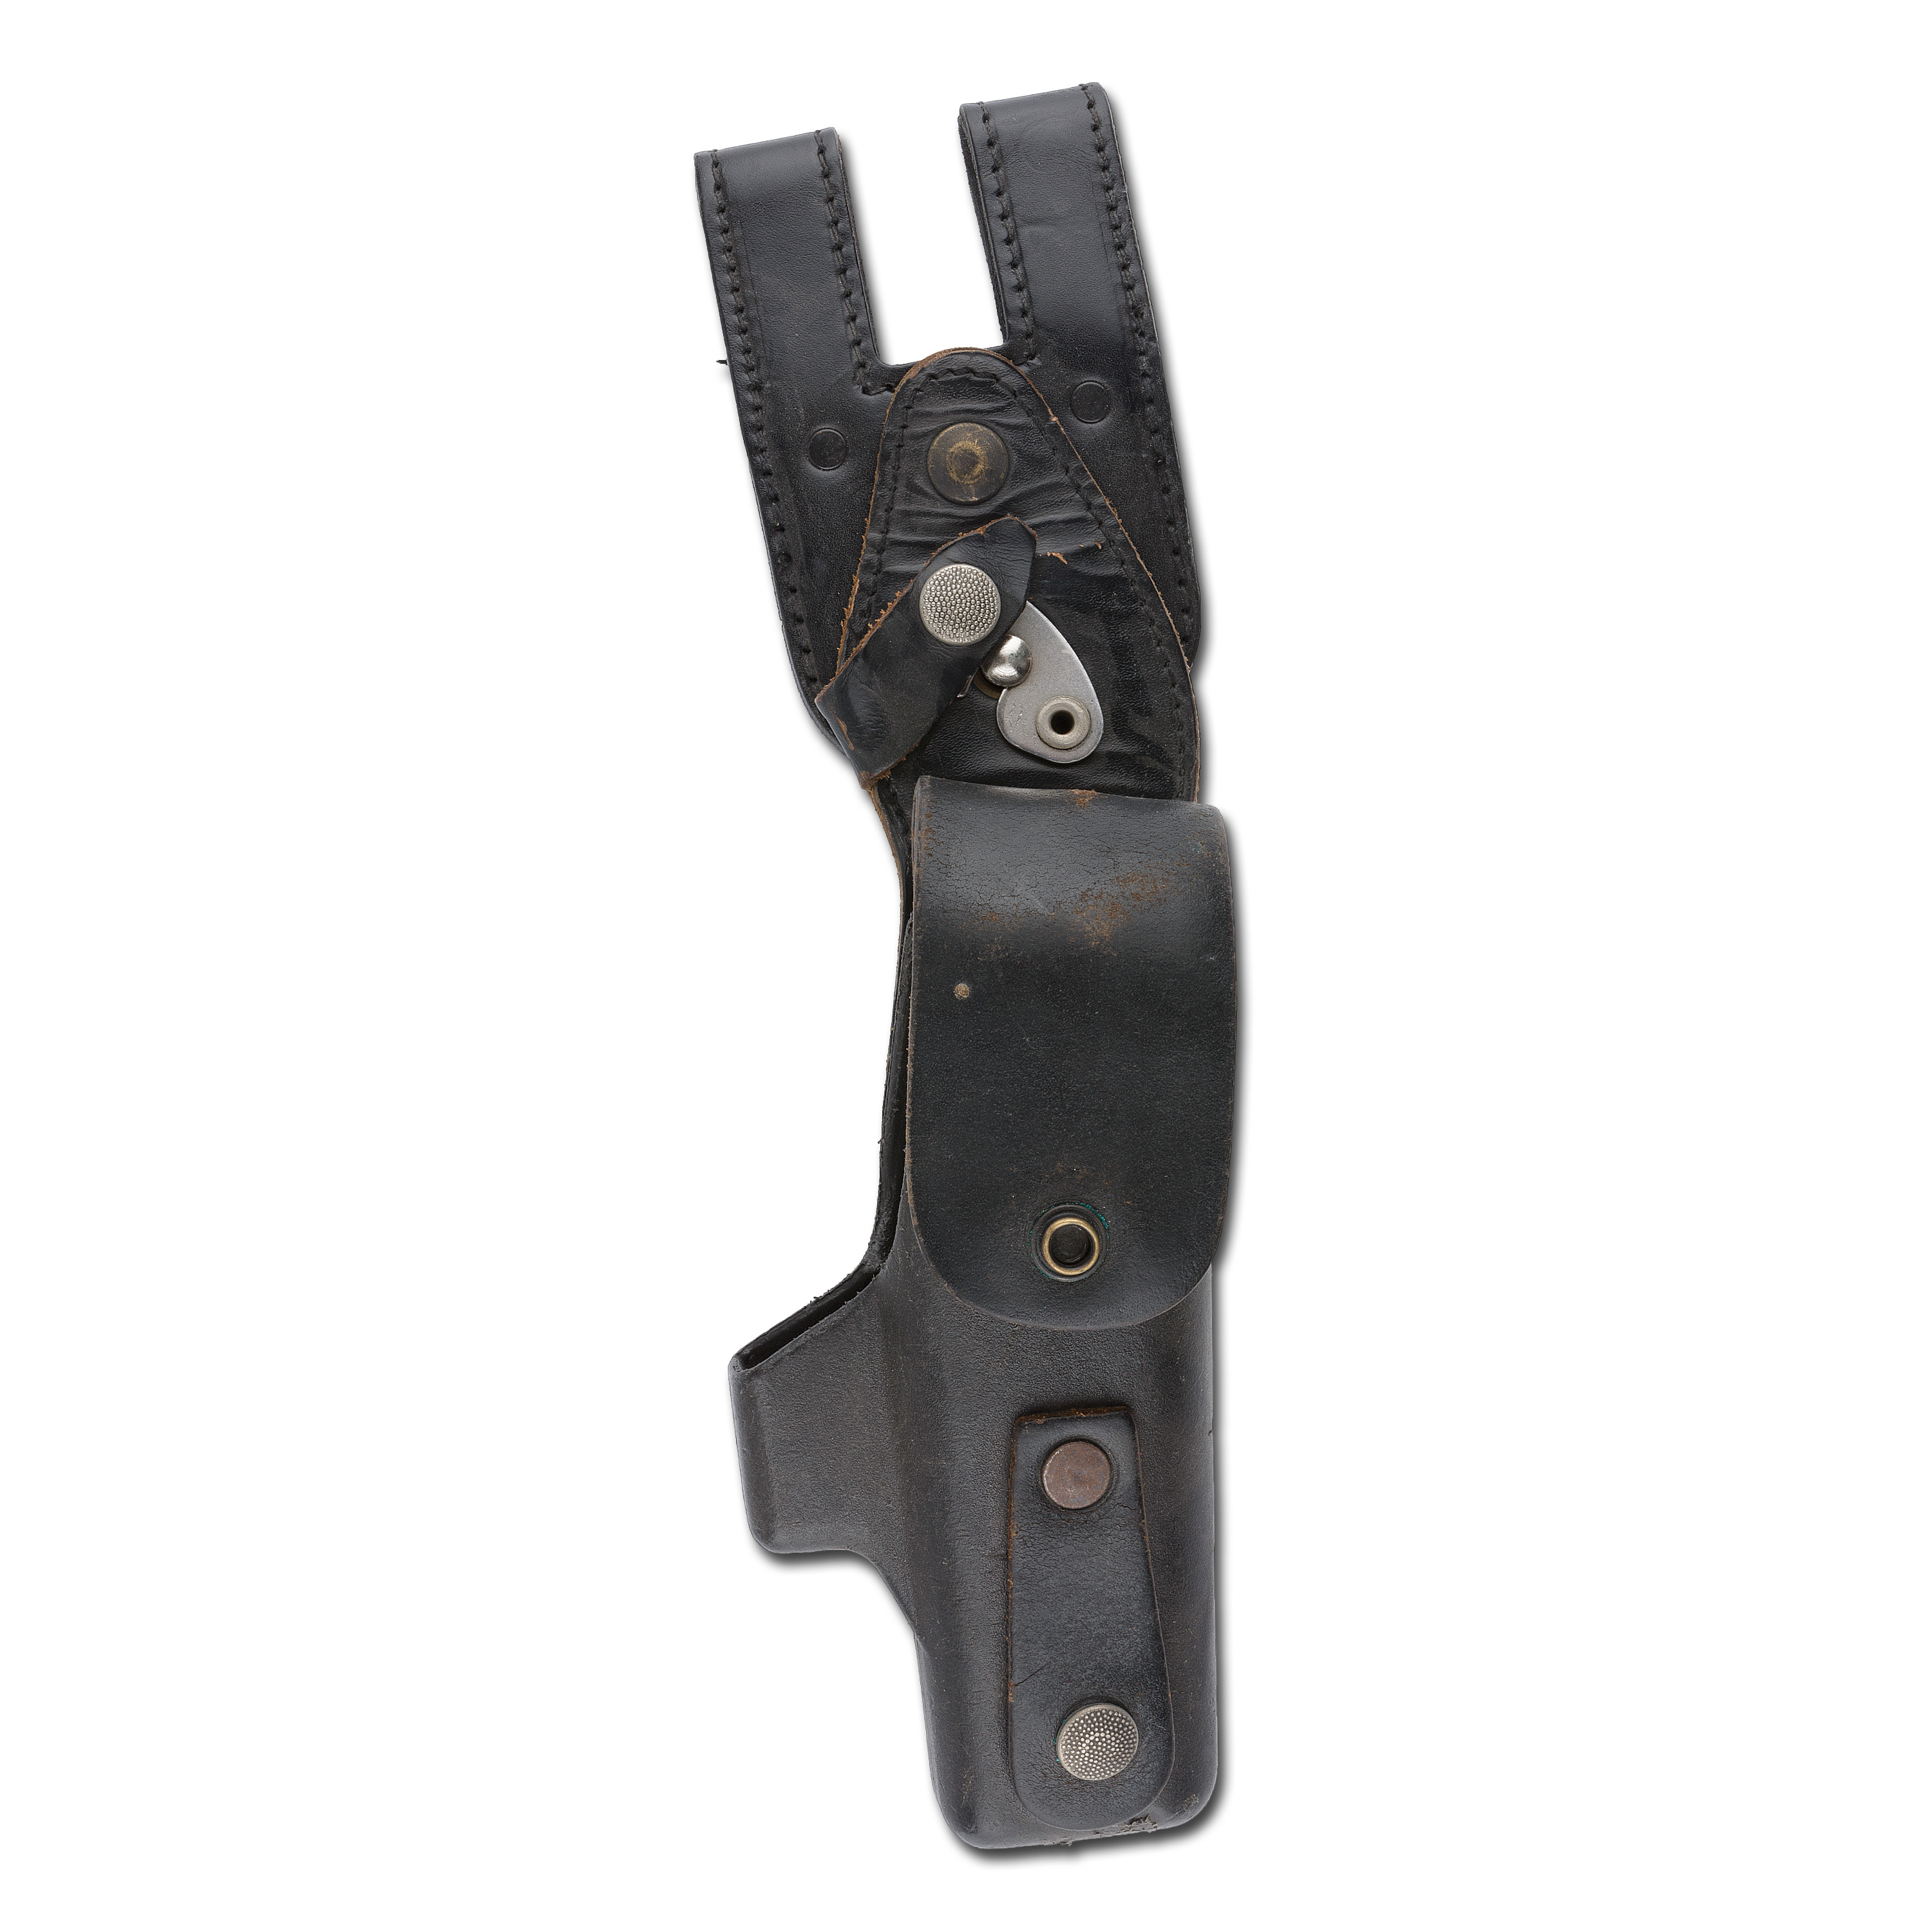 Holster à Extraction Rapide P6 droitier occasion